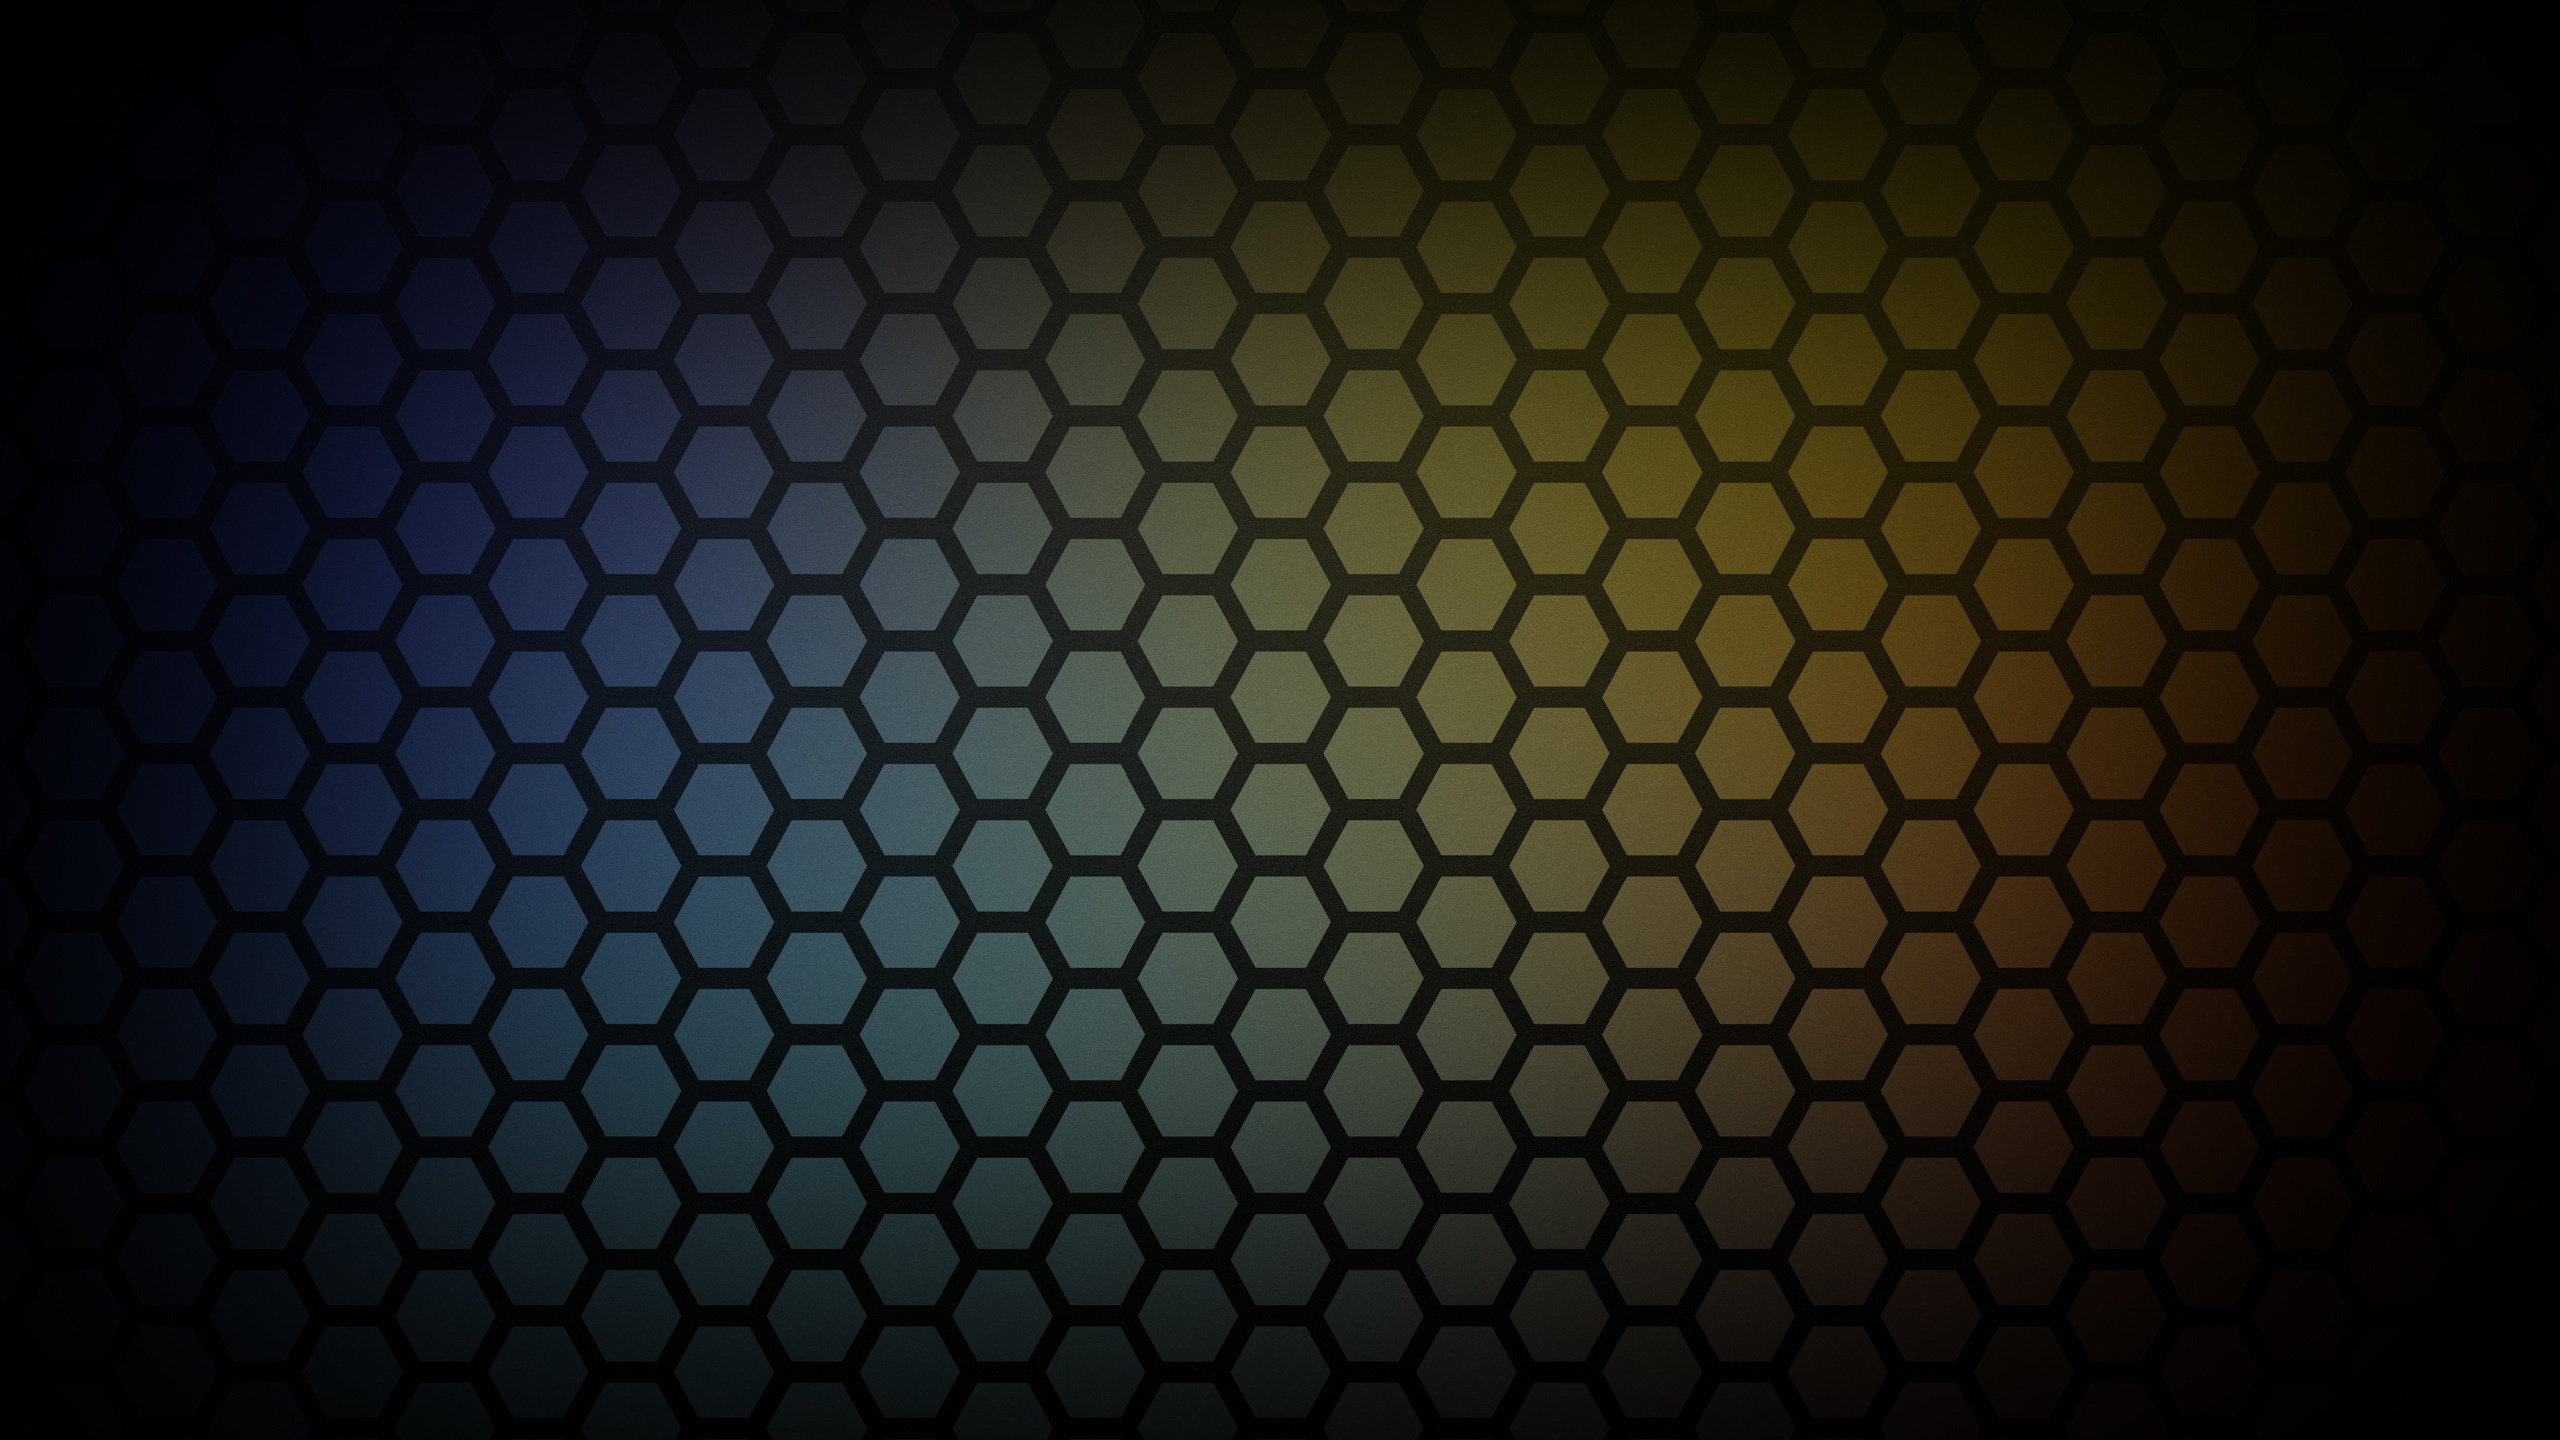 3d Wallpapers Android Phones Download 30 Texture Wallpapers